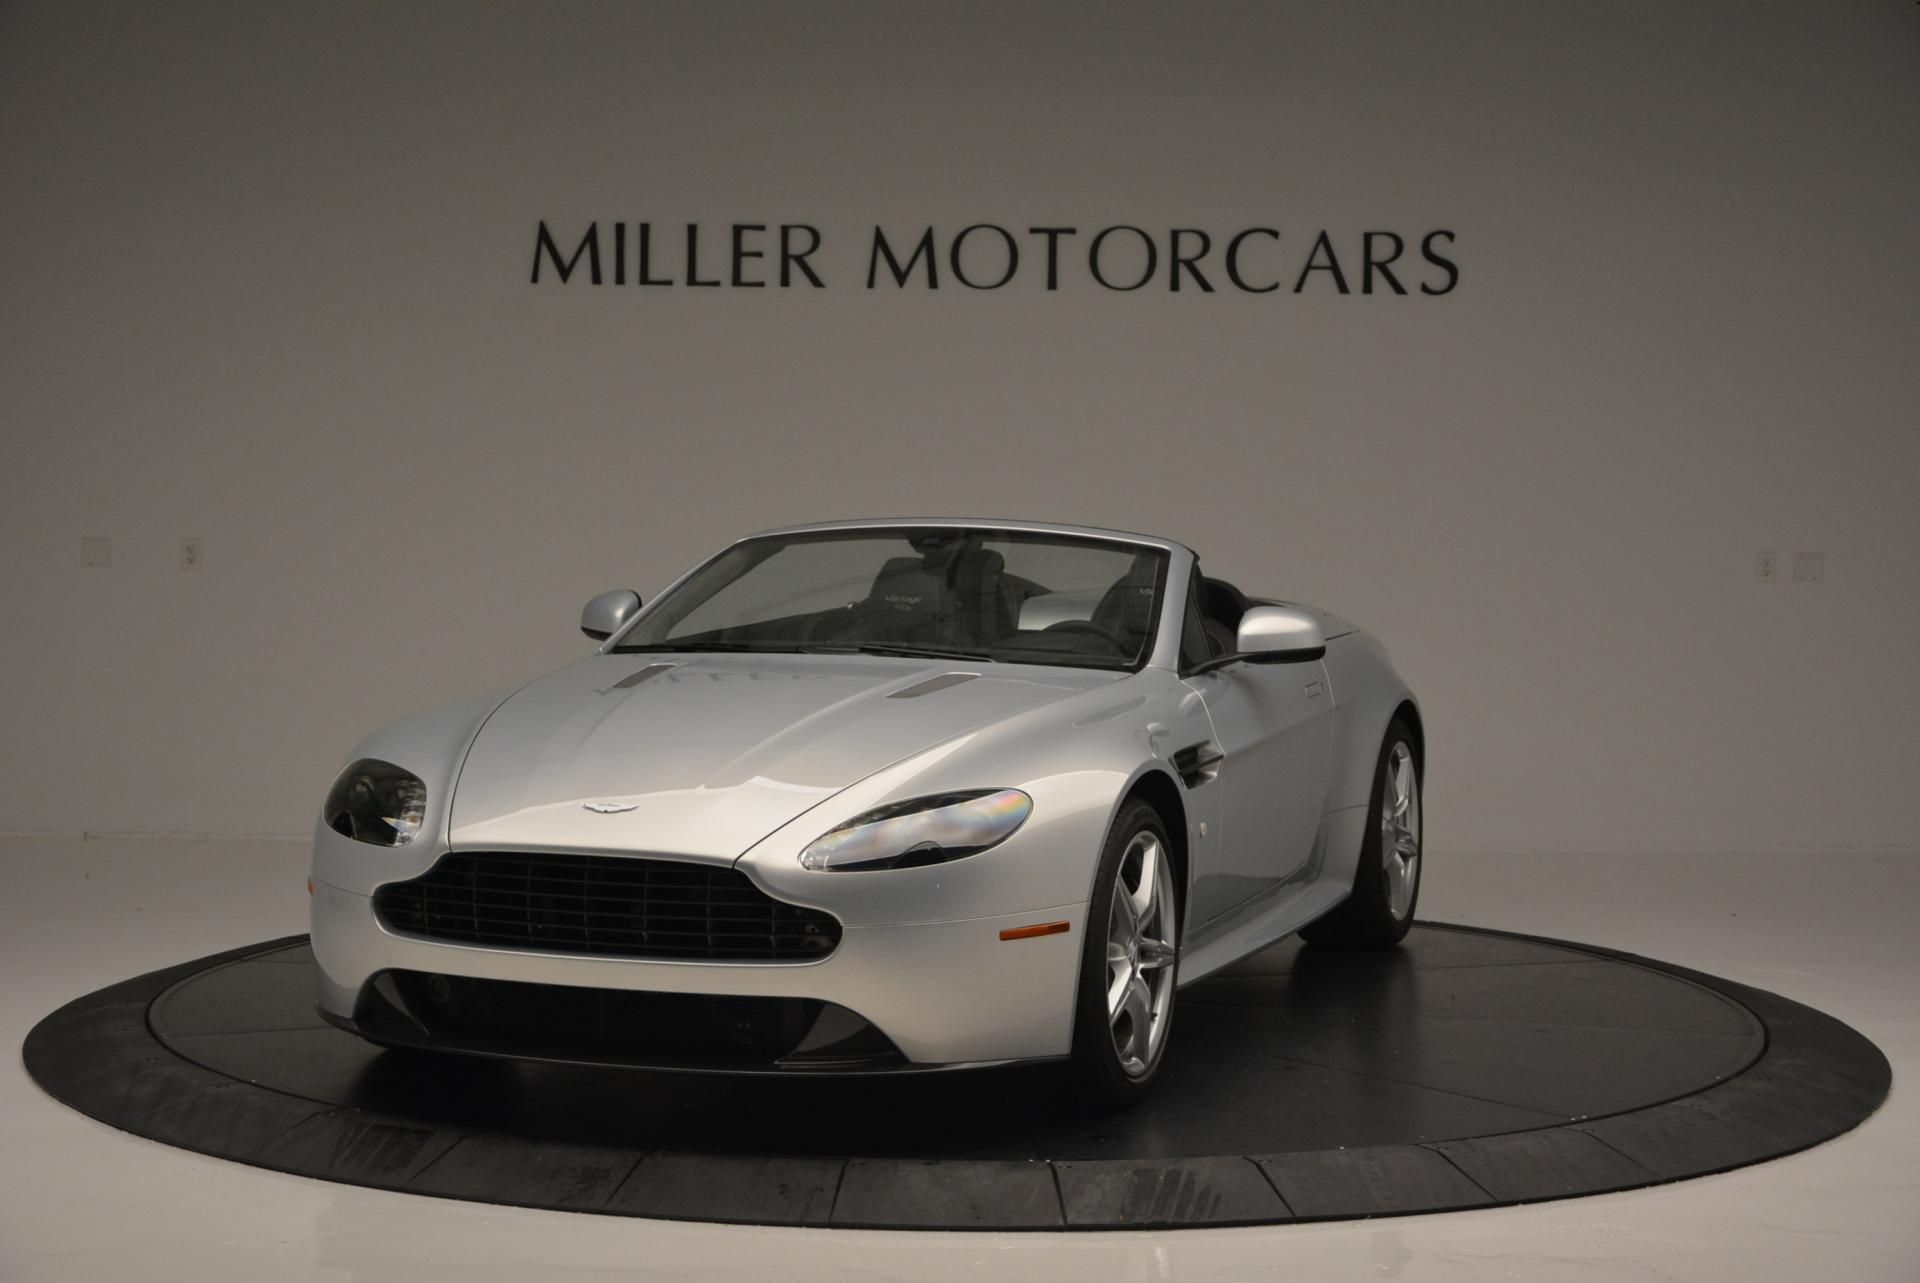 New 2016 Aston Martin V8 Vantage GTS Roadster for sale Sold at Rolls-Royce Motor Cars Greenwich in Greenwich CT 06830 1